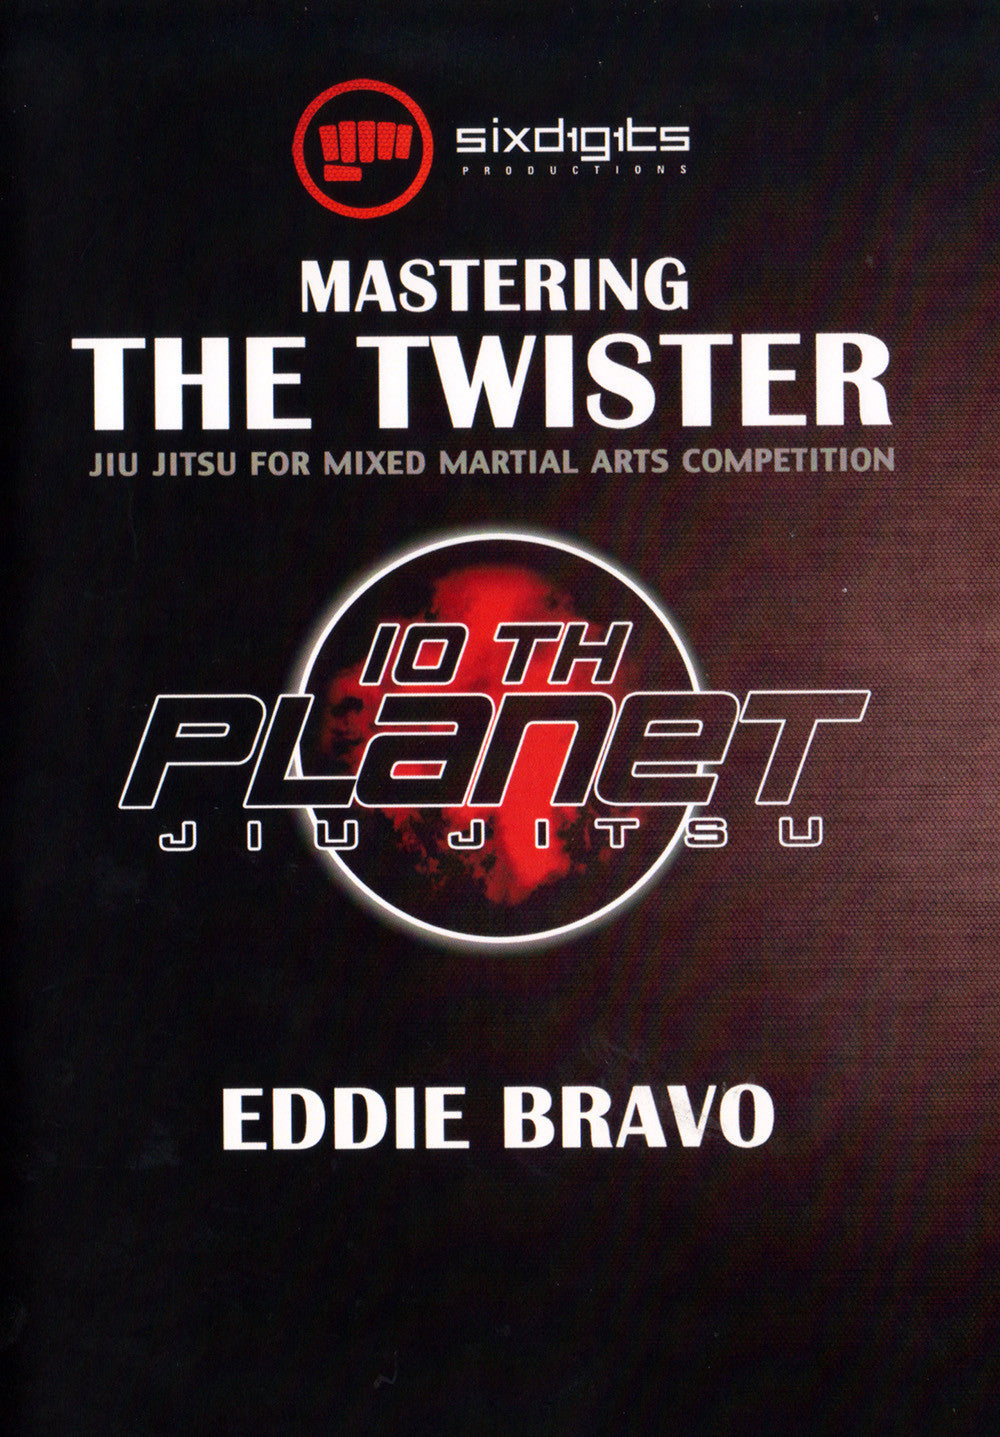 Mastering the Twister DVD by Eddie Bravo - Budovideos